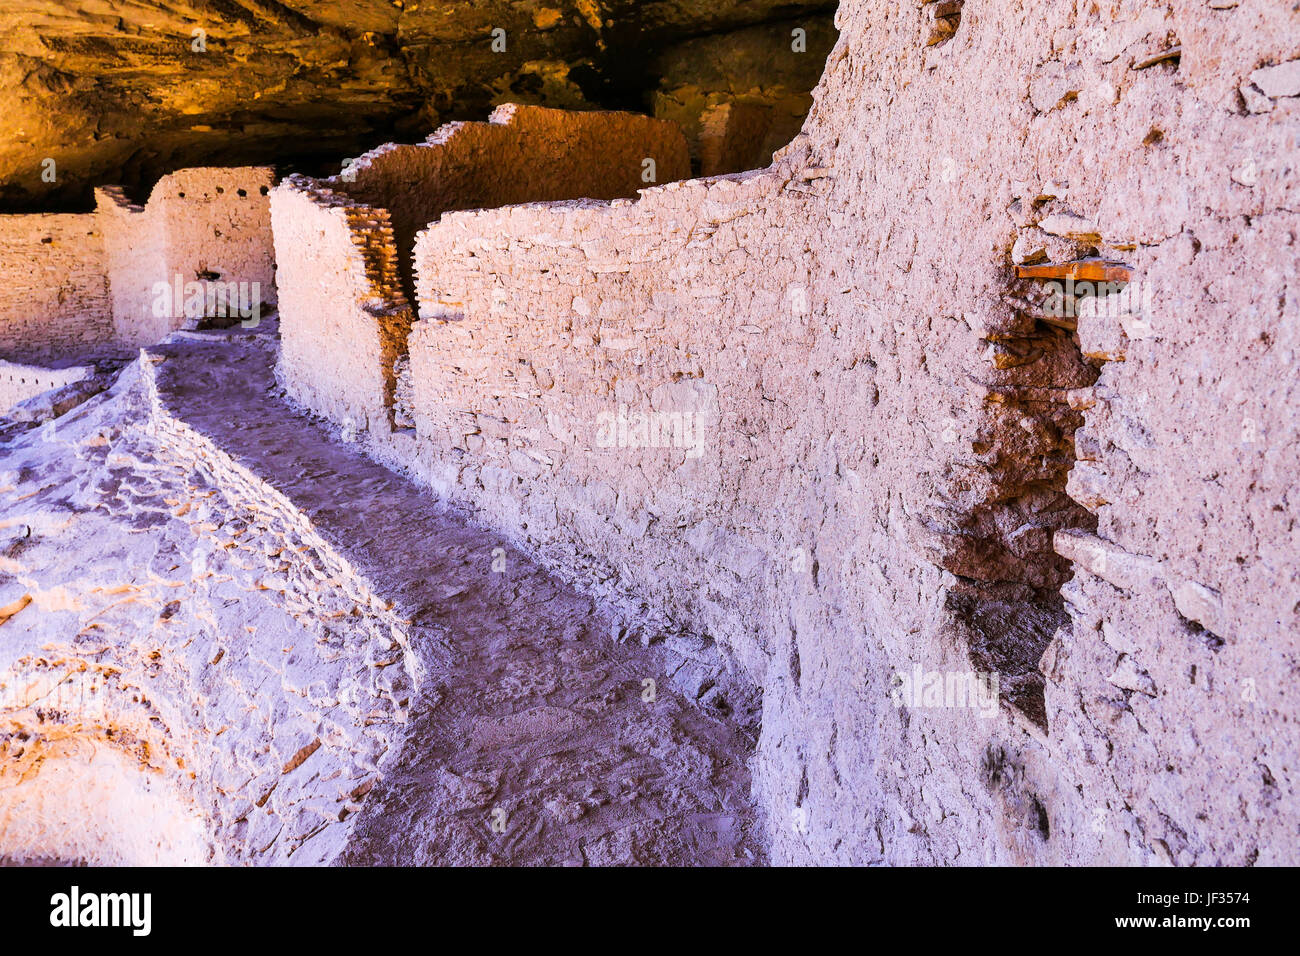 Cliff houses at the Gila Cliff Dwellings National Monument, near Silver City, New Mexico. Stock Photo